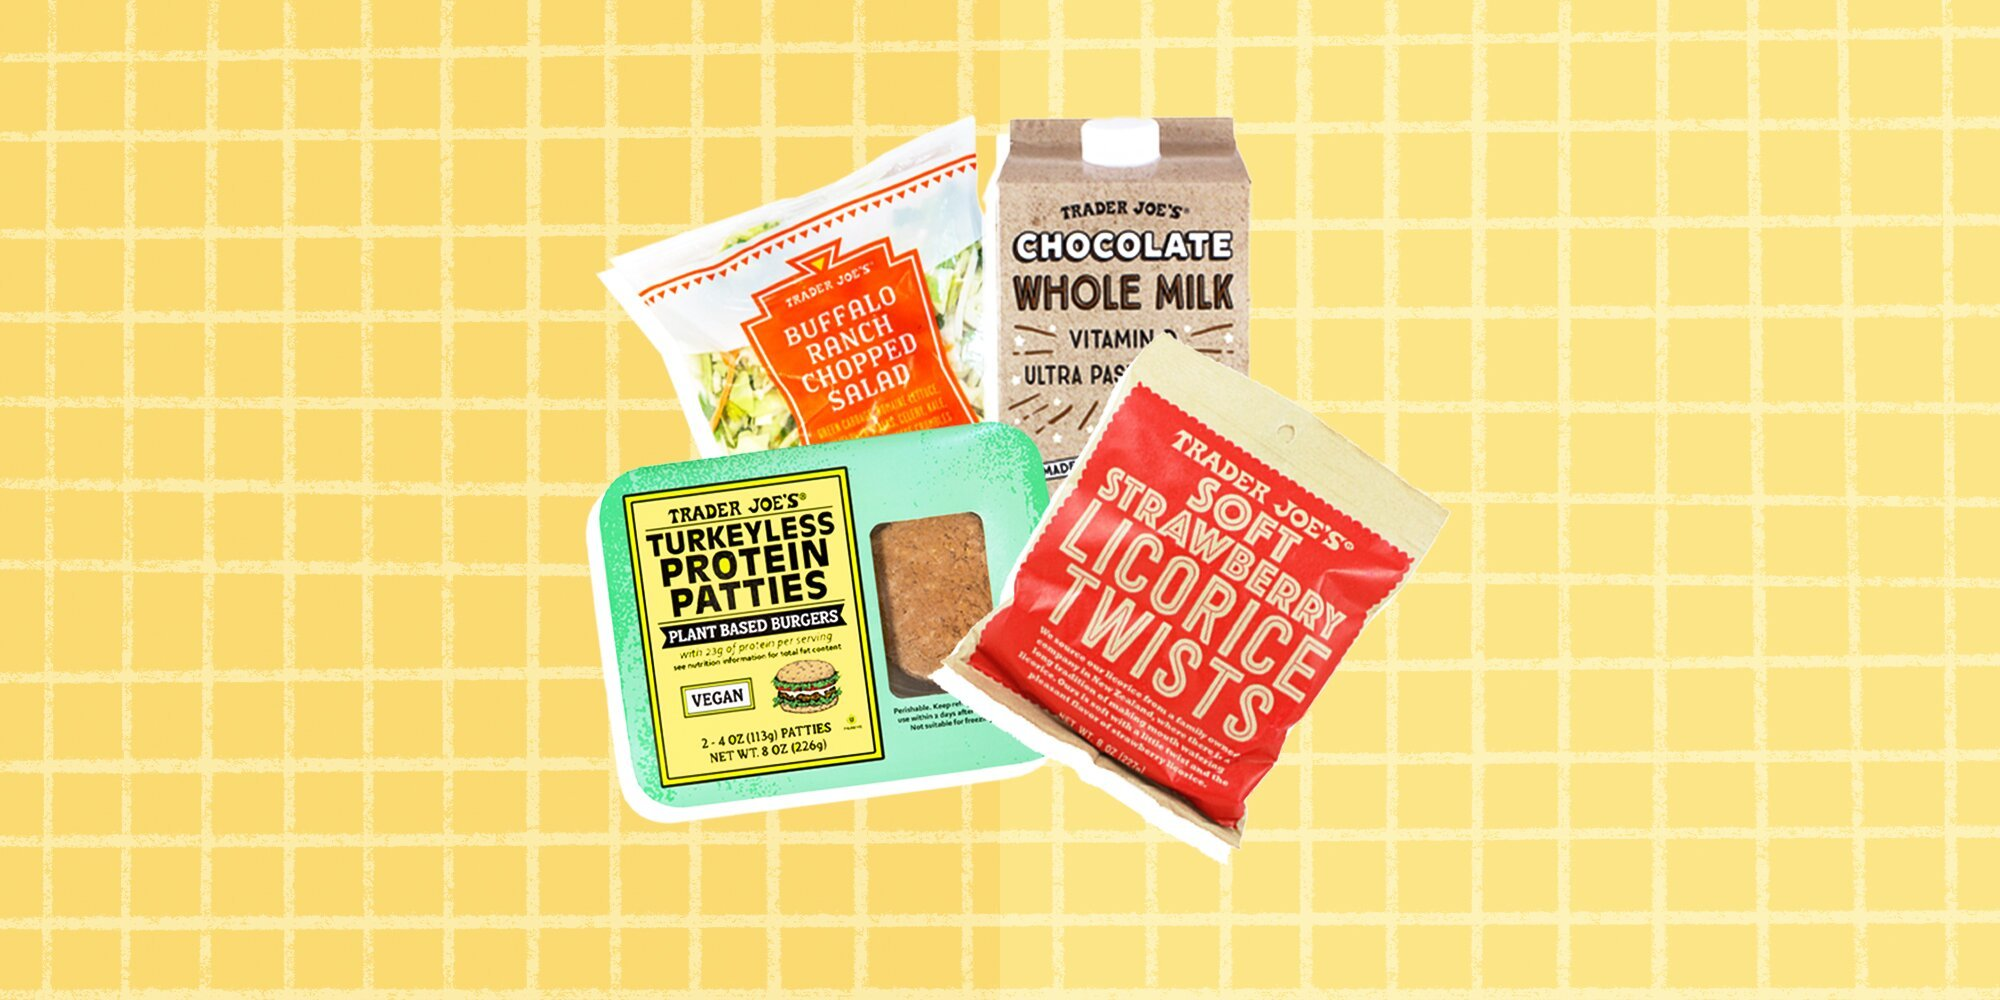 9 Underrated Products at Trader Joe's You Should Try, According to Employees